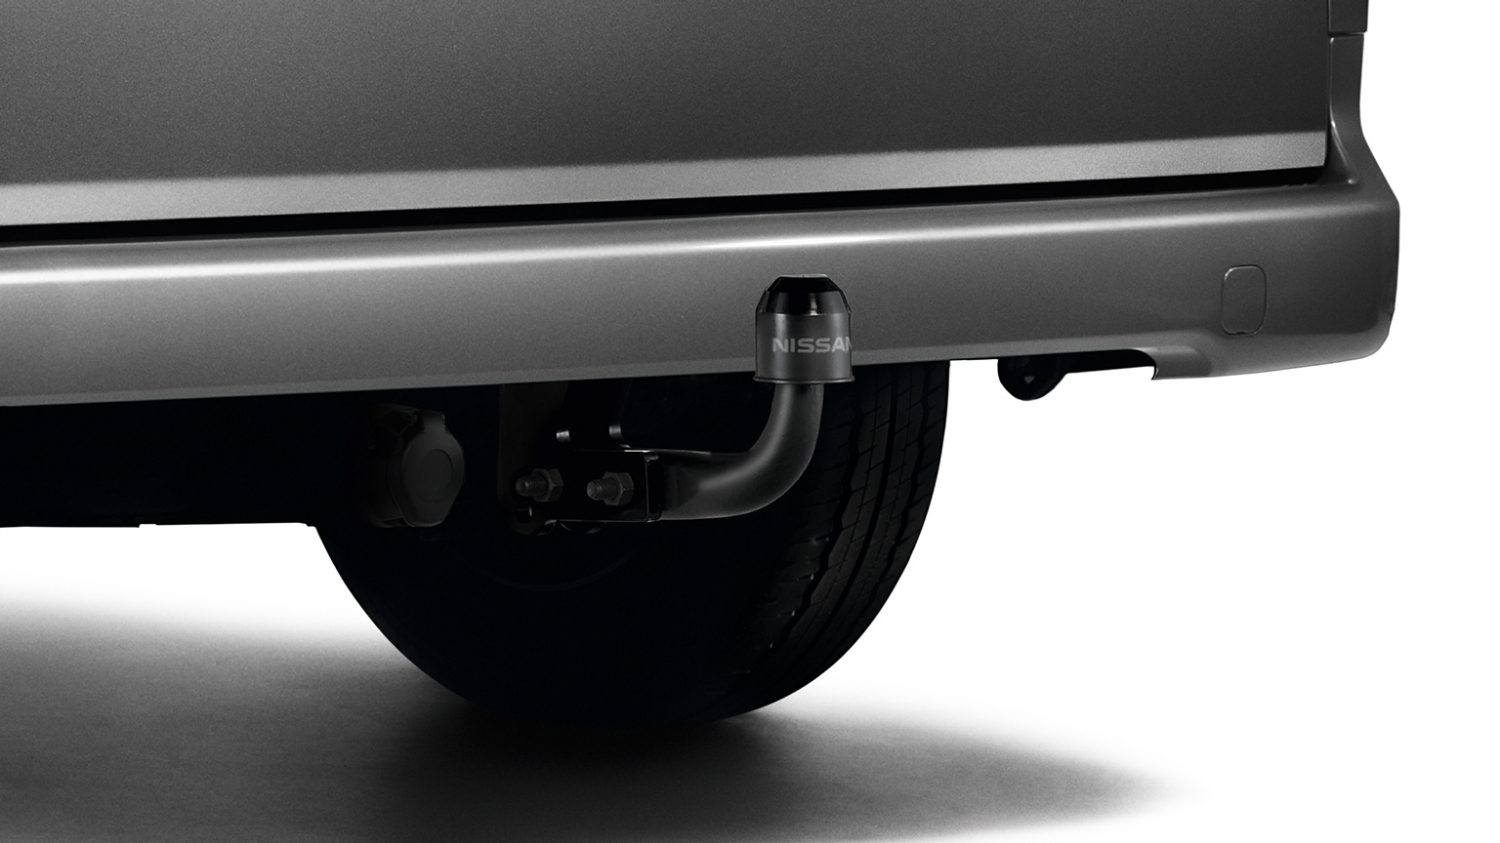 Nissan NV200 - Fixed towbar